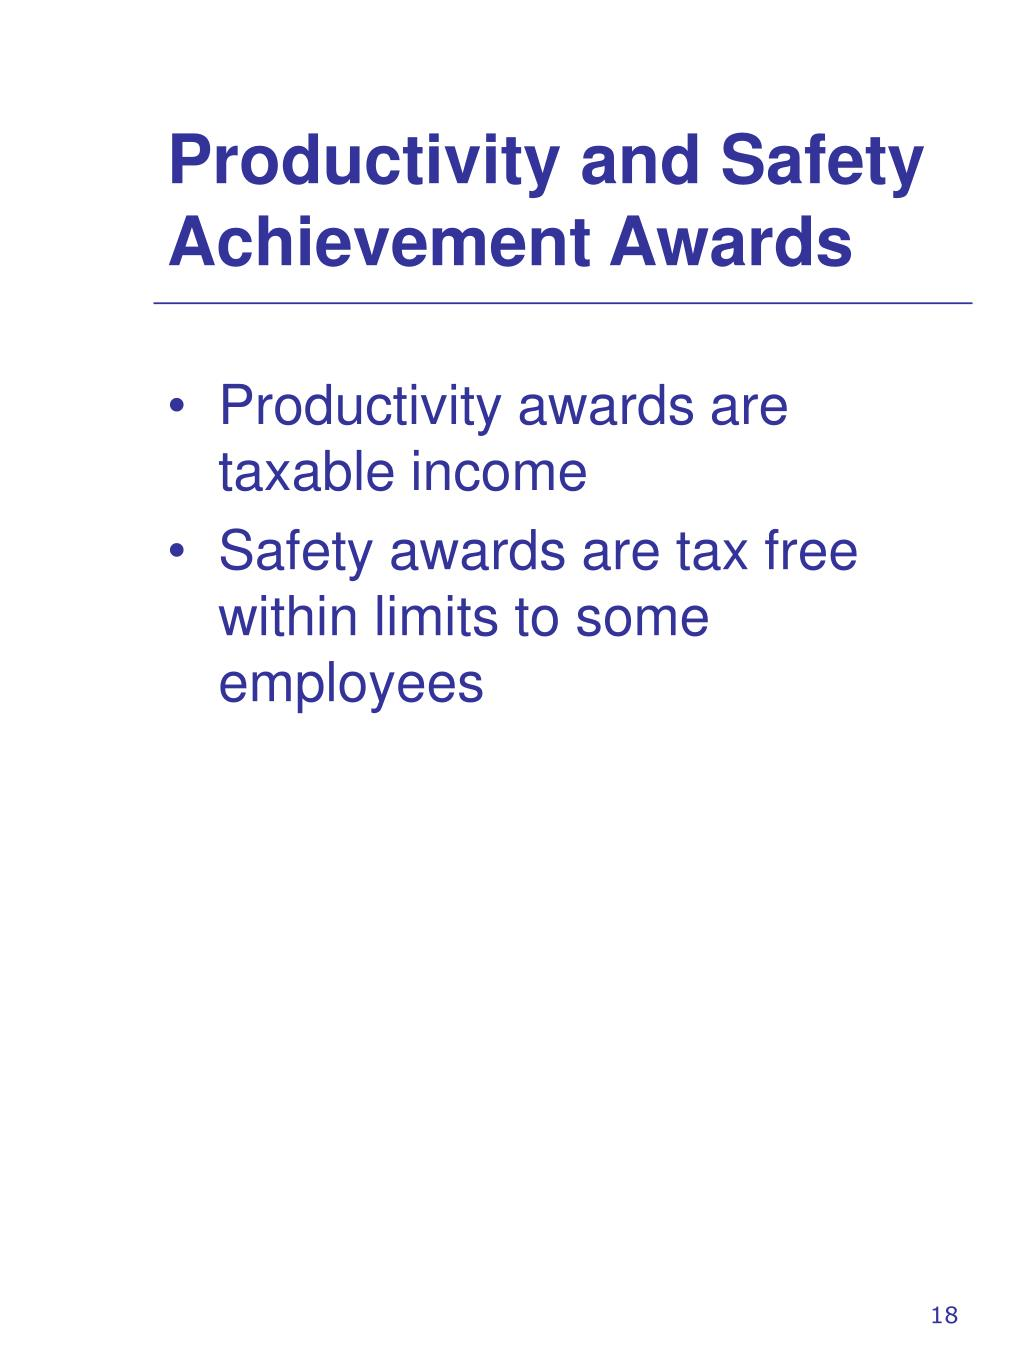 Productivity and Safety Achievement Awards